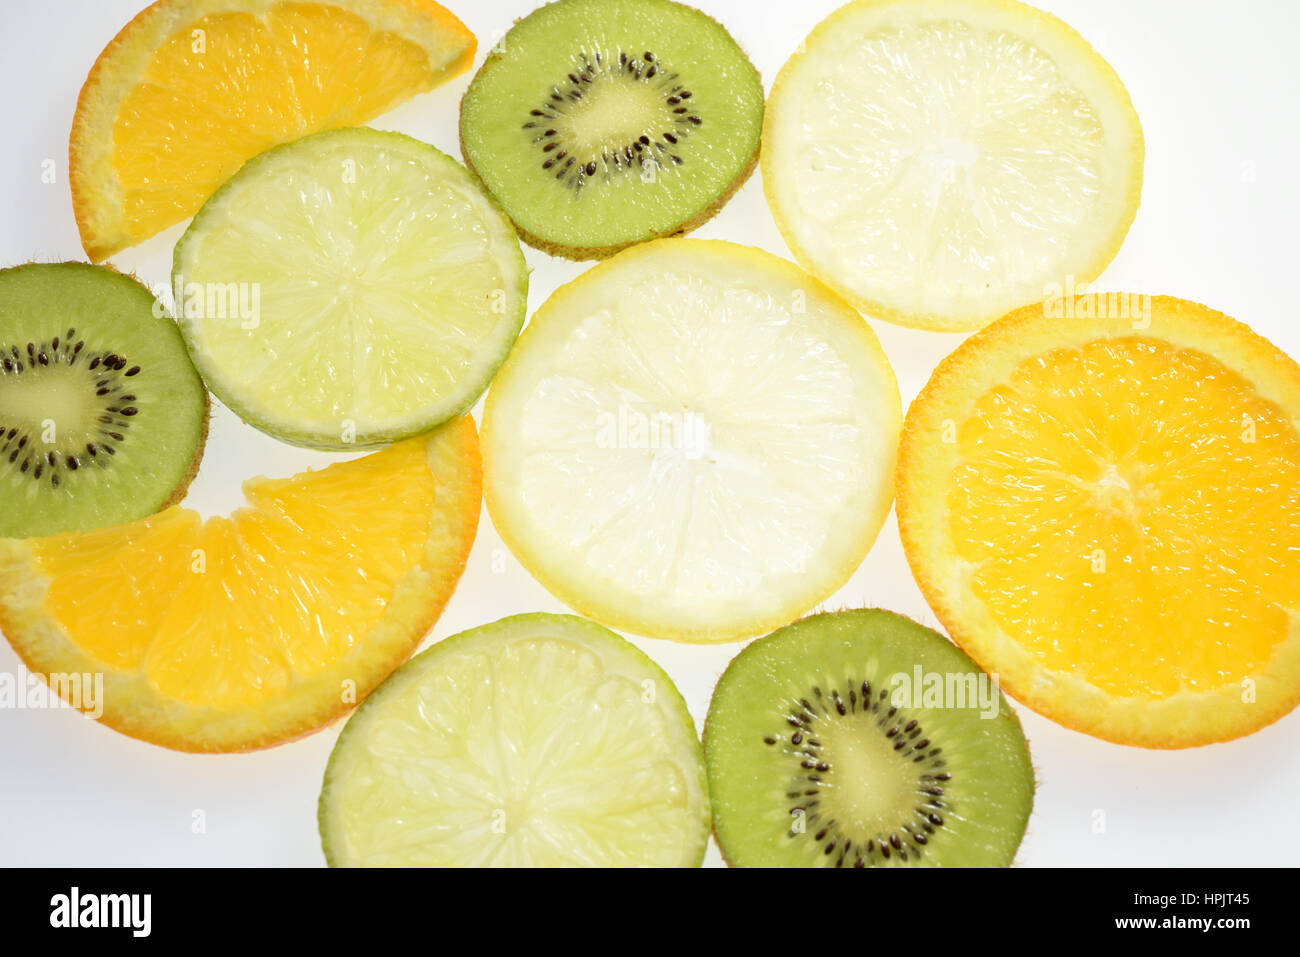 Slices of citrus fruit - Stock Image